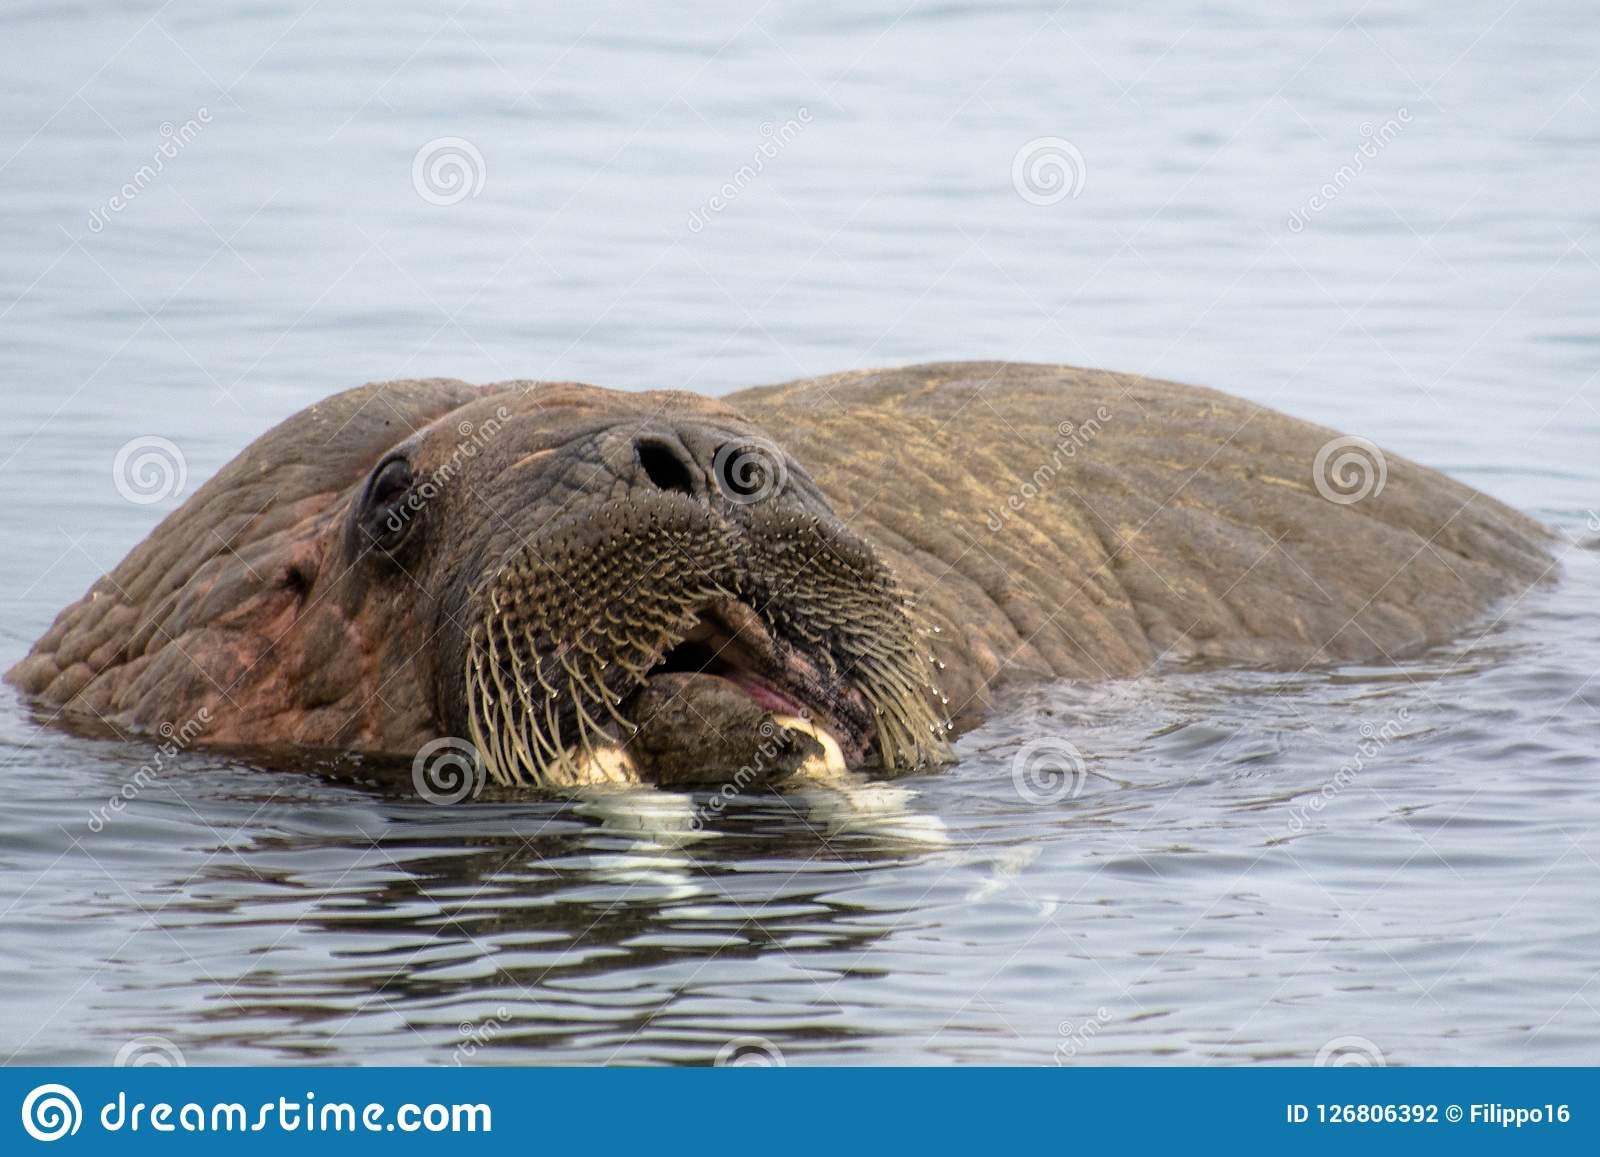 Arctic Island of Svalbard Norway, Walrus in the cold Water of the Arctic Ocean